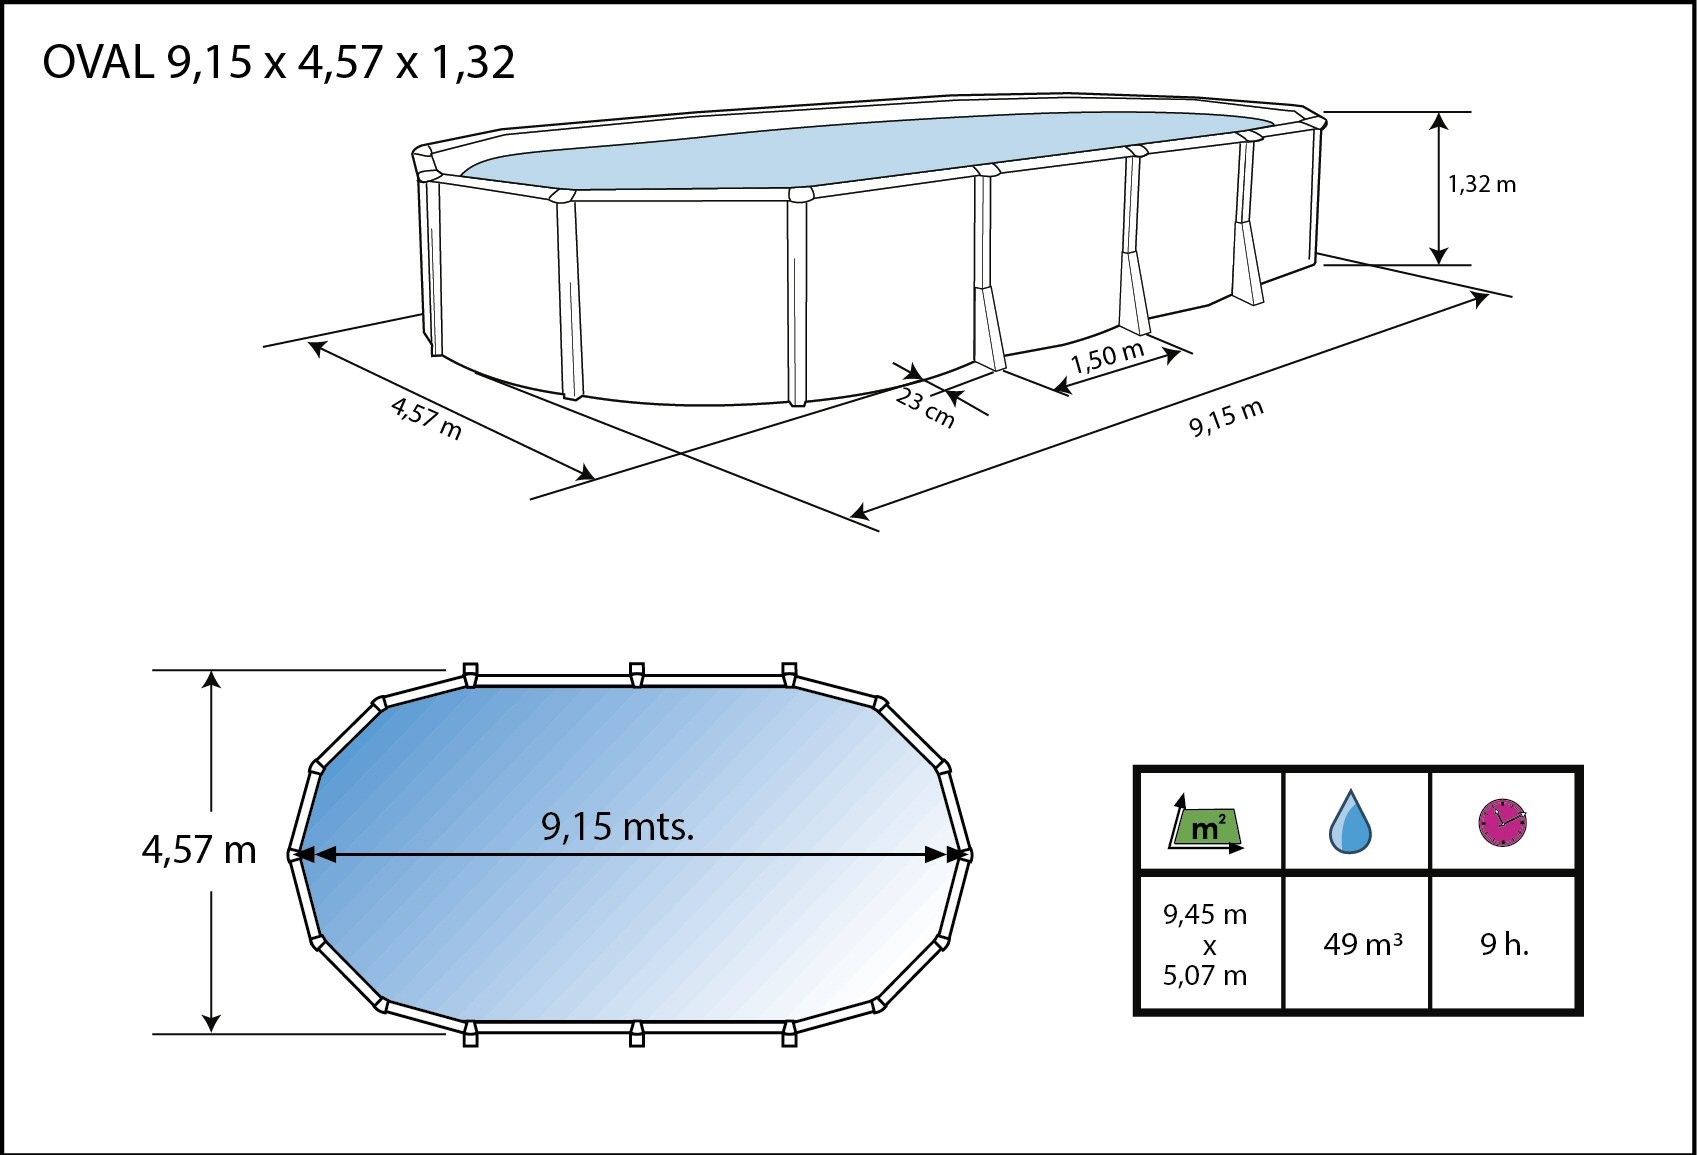 Buttress Free Oval Pool - 9.14m x 4.57m x 1.32m